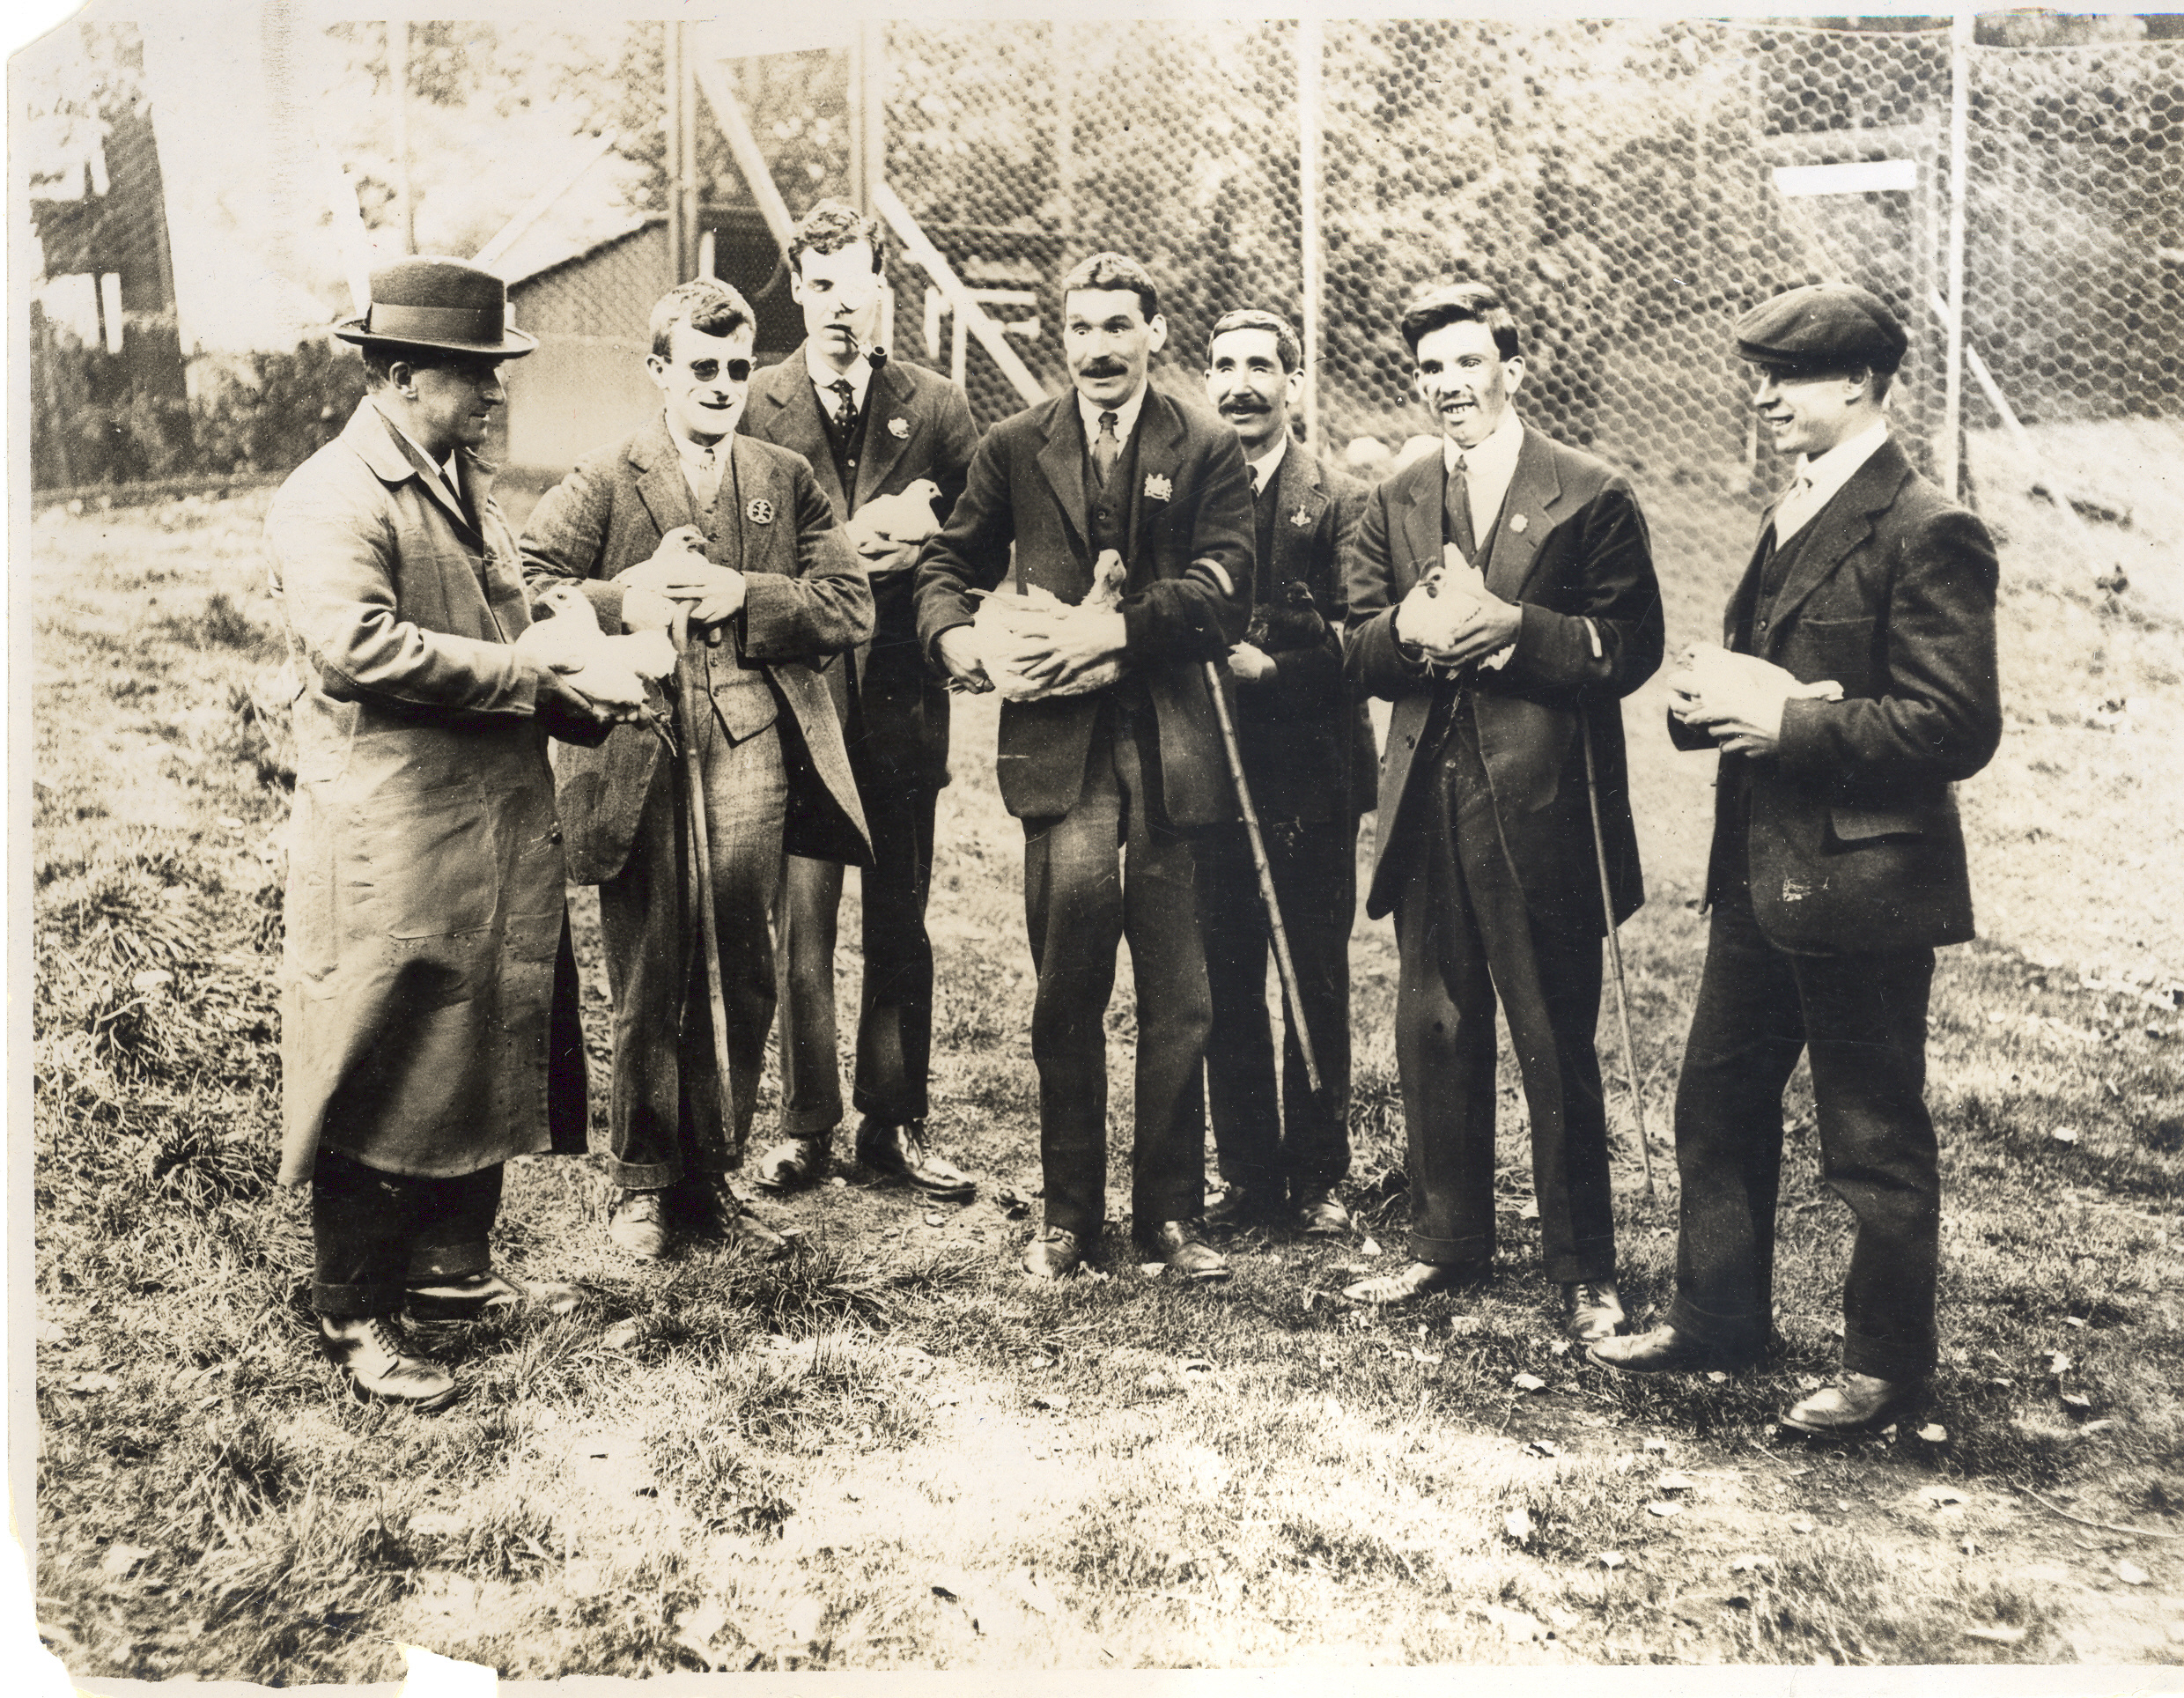 Members of St. Dunstan's undergoing training, note the differing types of facial injury sustained in the First World War. Image courtesy Blind Veterans UK.